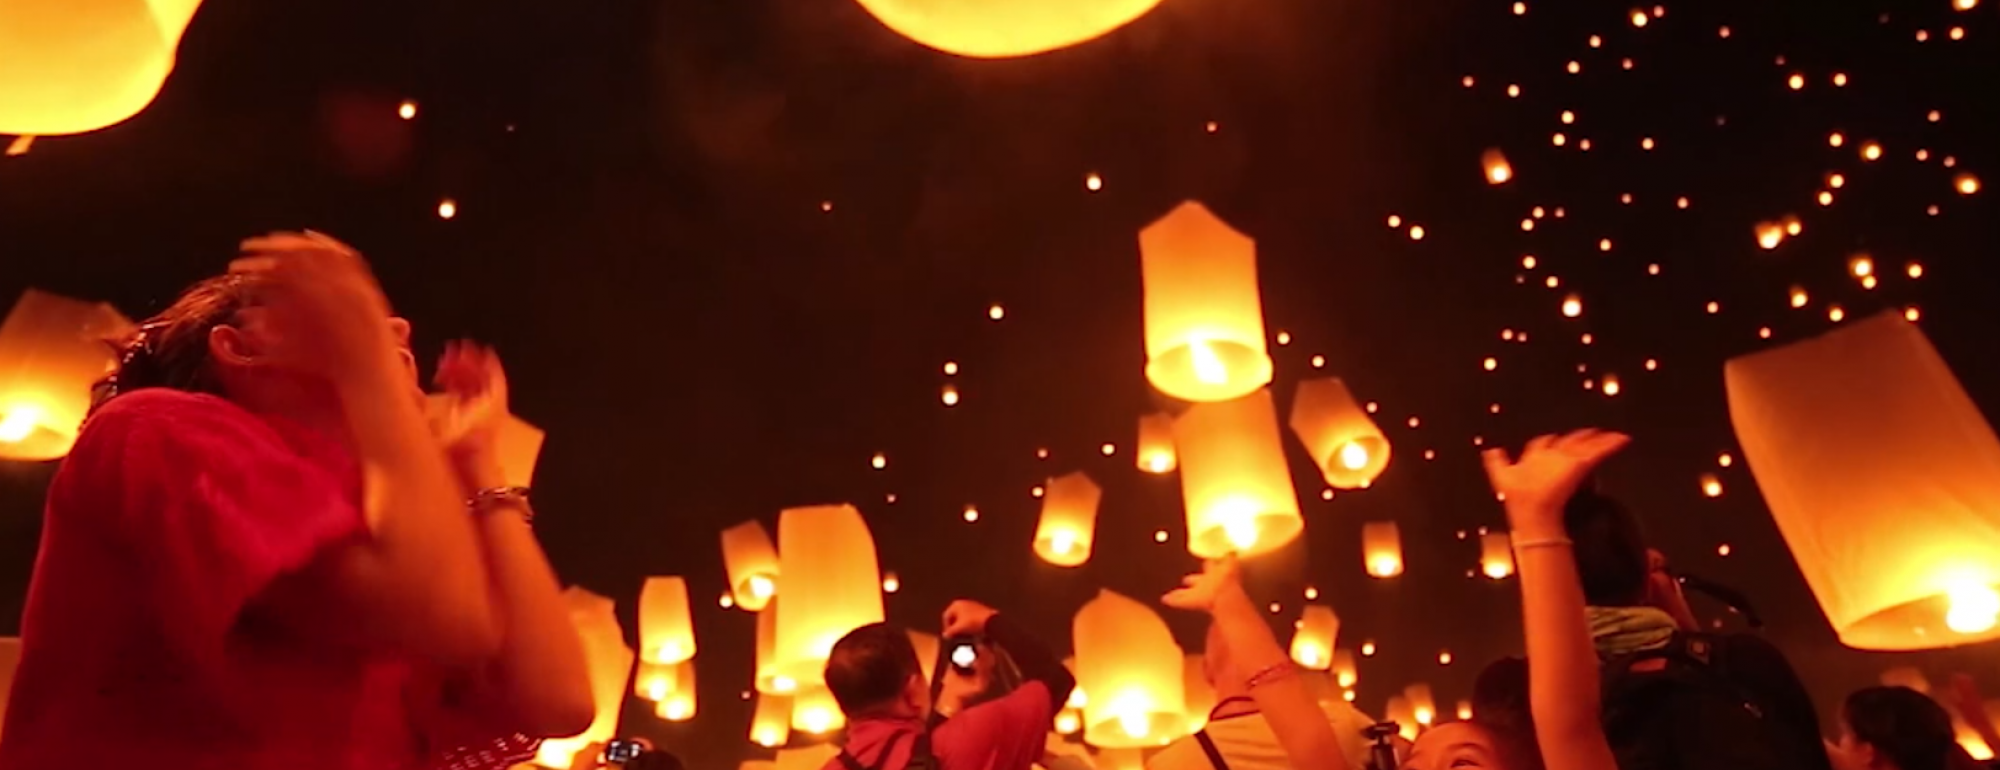 people letting go of lanterns into the air